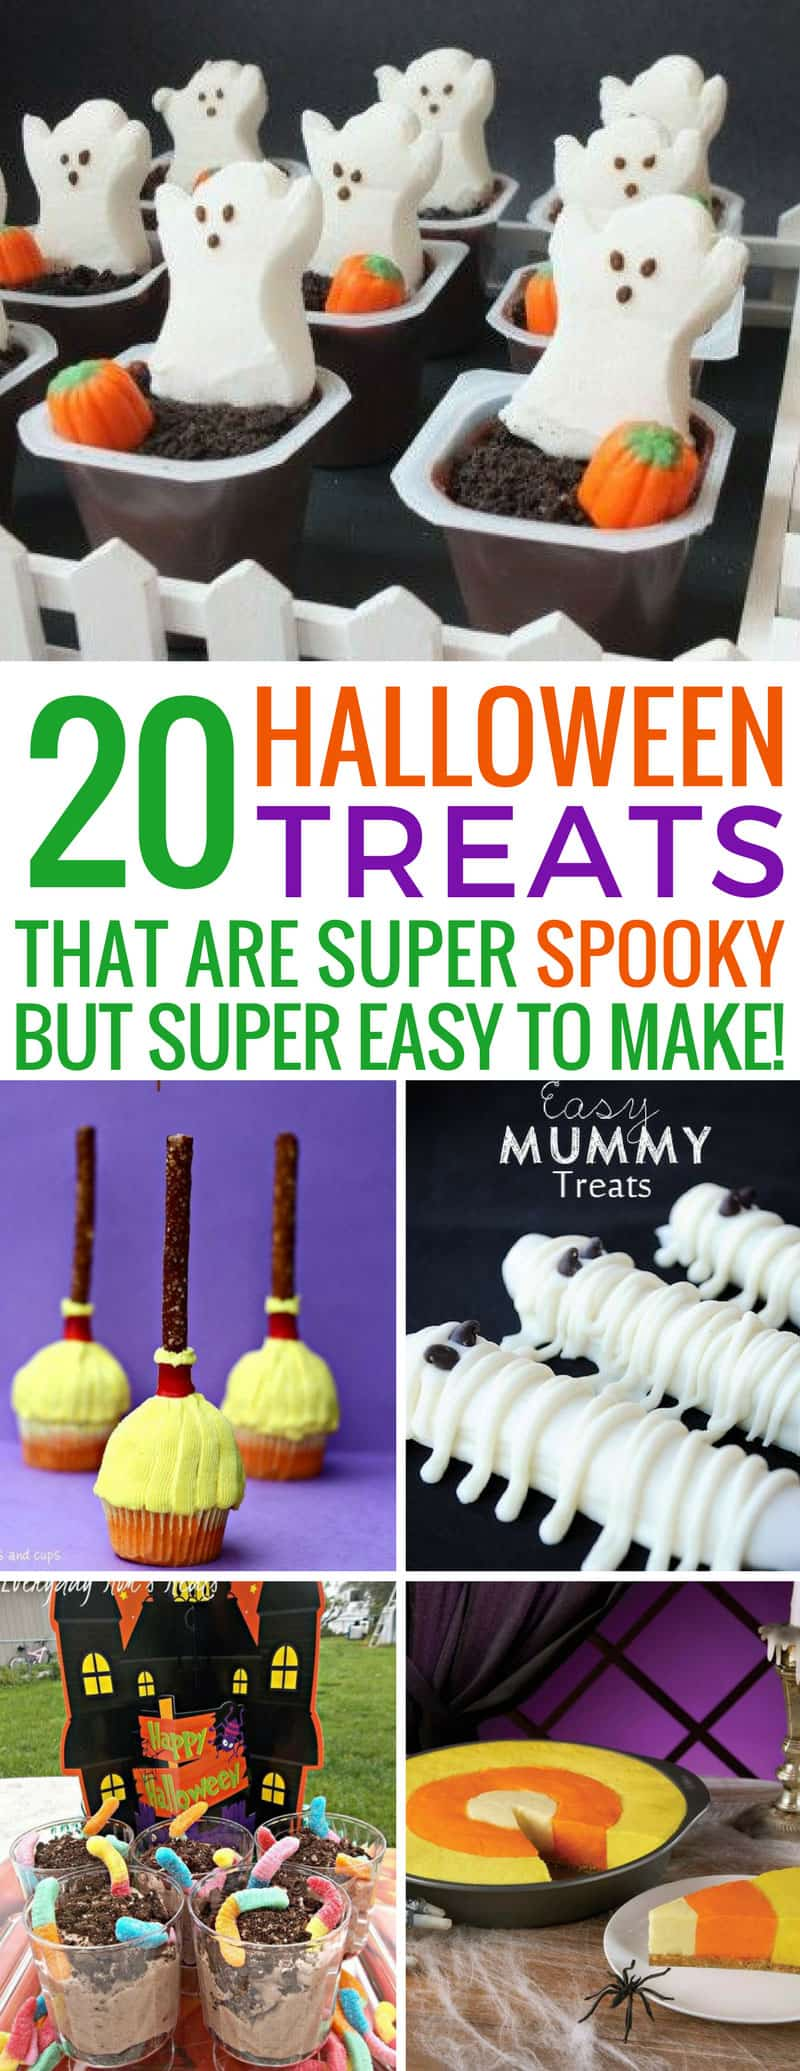 Loving these easy Halloween treats - they are going to go down a storm at our party! Thanks for sharing!